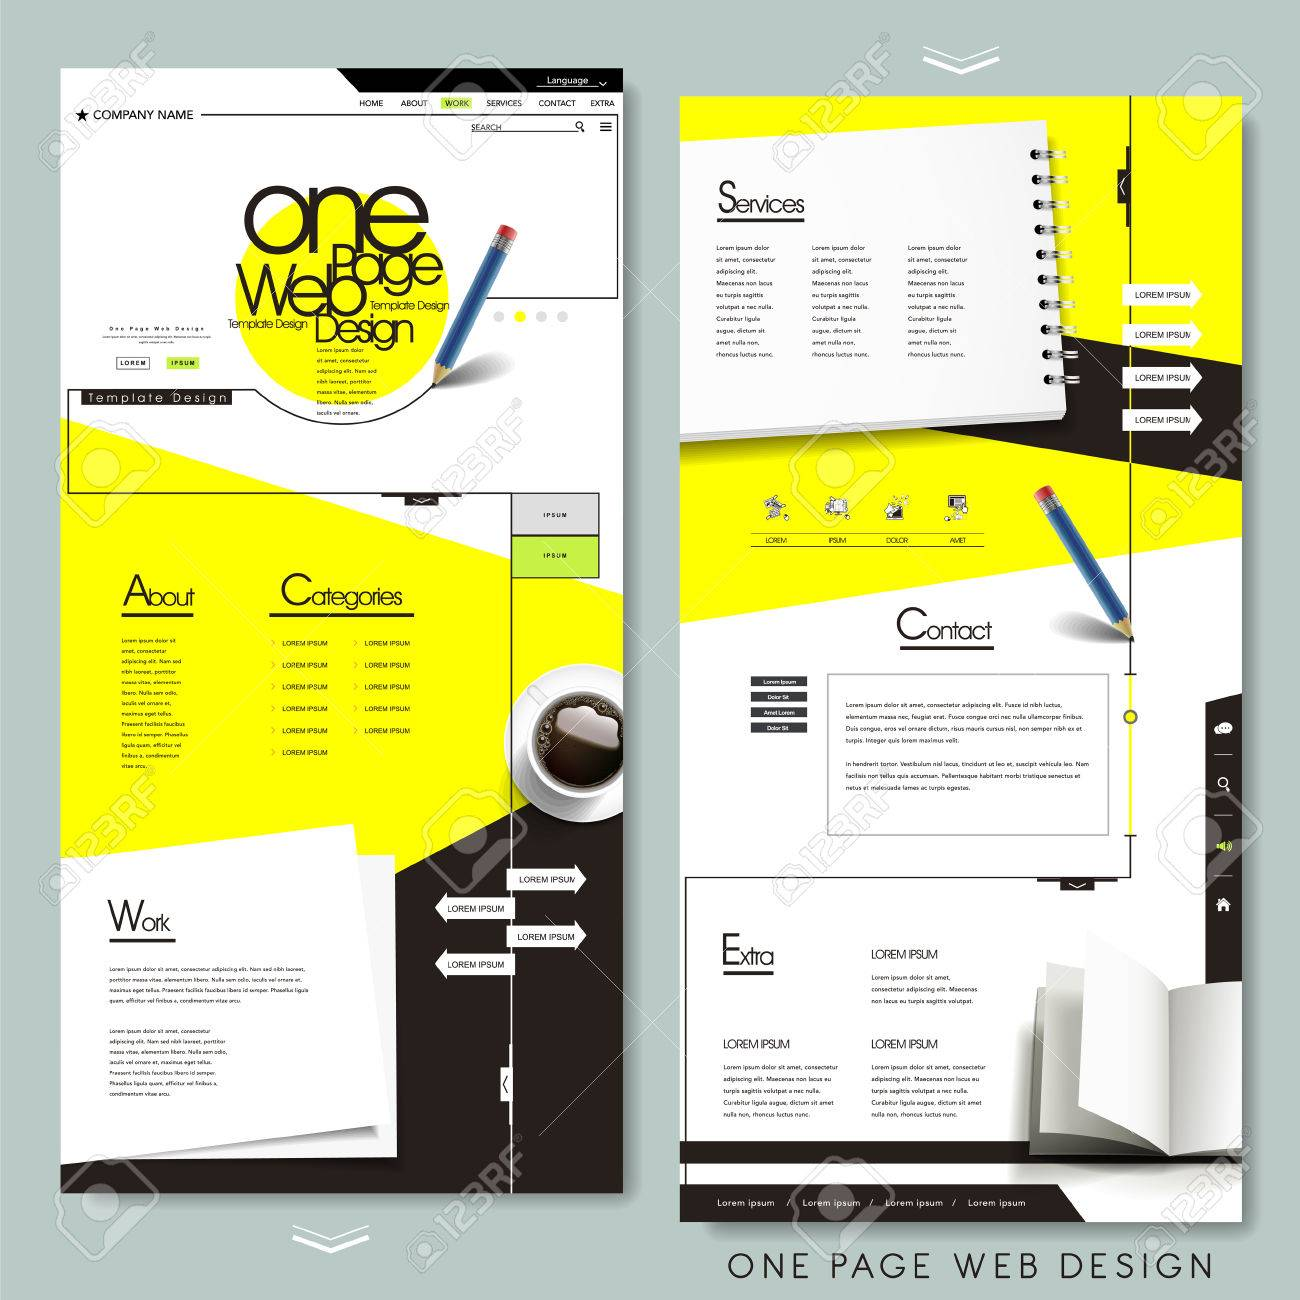 Delighted 2 Page Resume Template Word Huge 2014 Sample Resume Templates Shaped 2015 Calendar Template 2015 Printable Calendar Template Youthful 3d Character Modeler Resume Purple3d Powerpoint Presentation Templates One Page Website Template Design With Stationery Concept Royalty ..